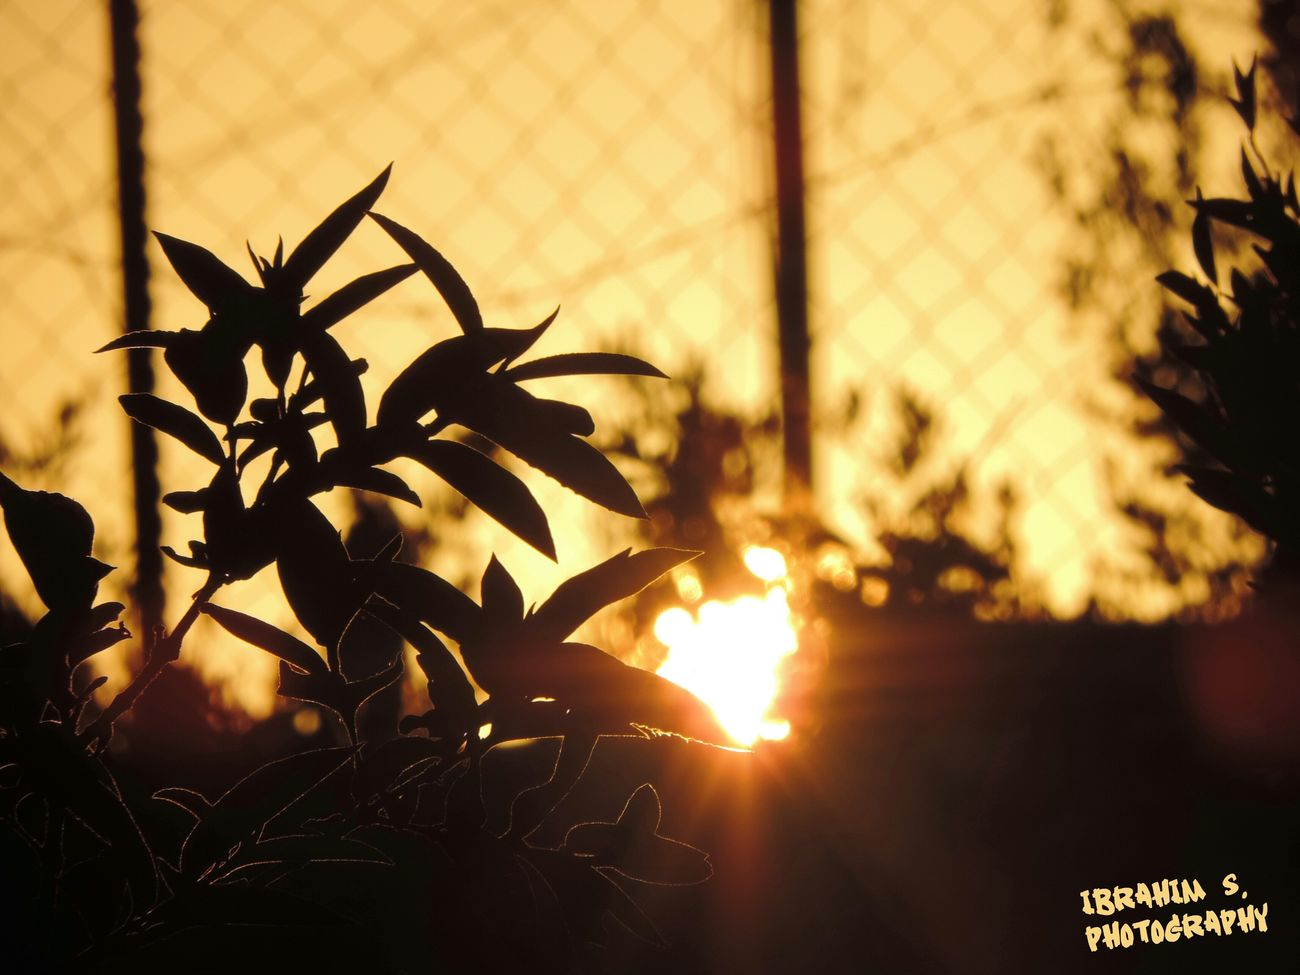 Depth Of Field Sunset Hello World Ibrahim S Photography